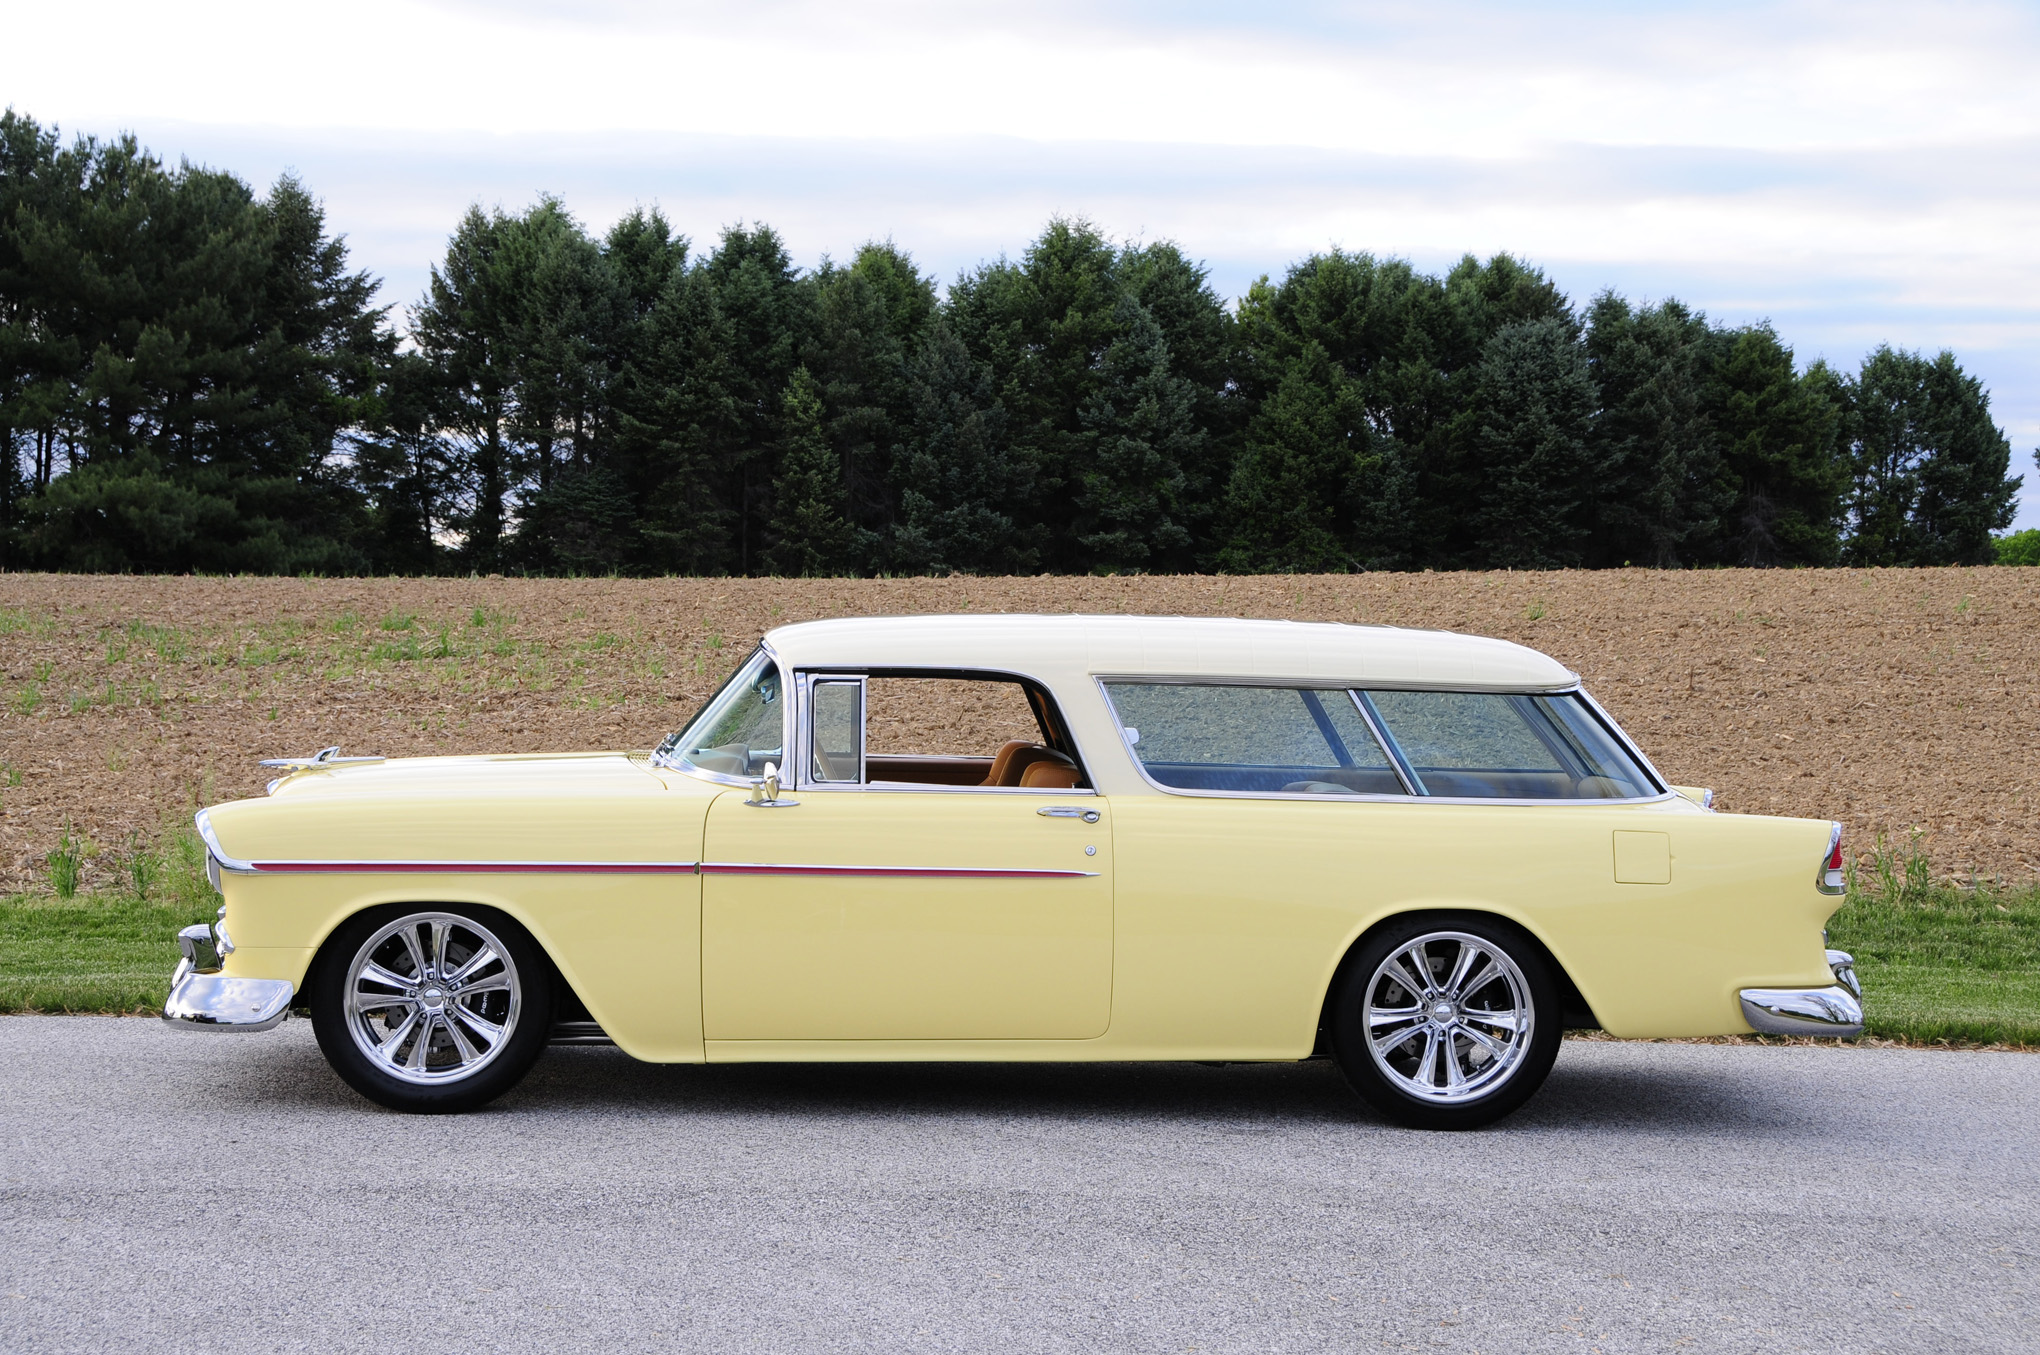 2040x1355 - Chevrolet Nomad Wallpapers 31